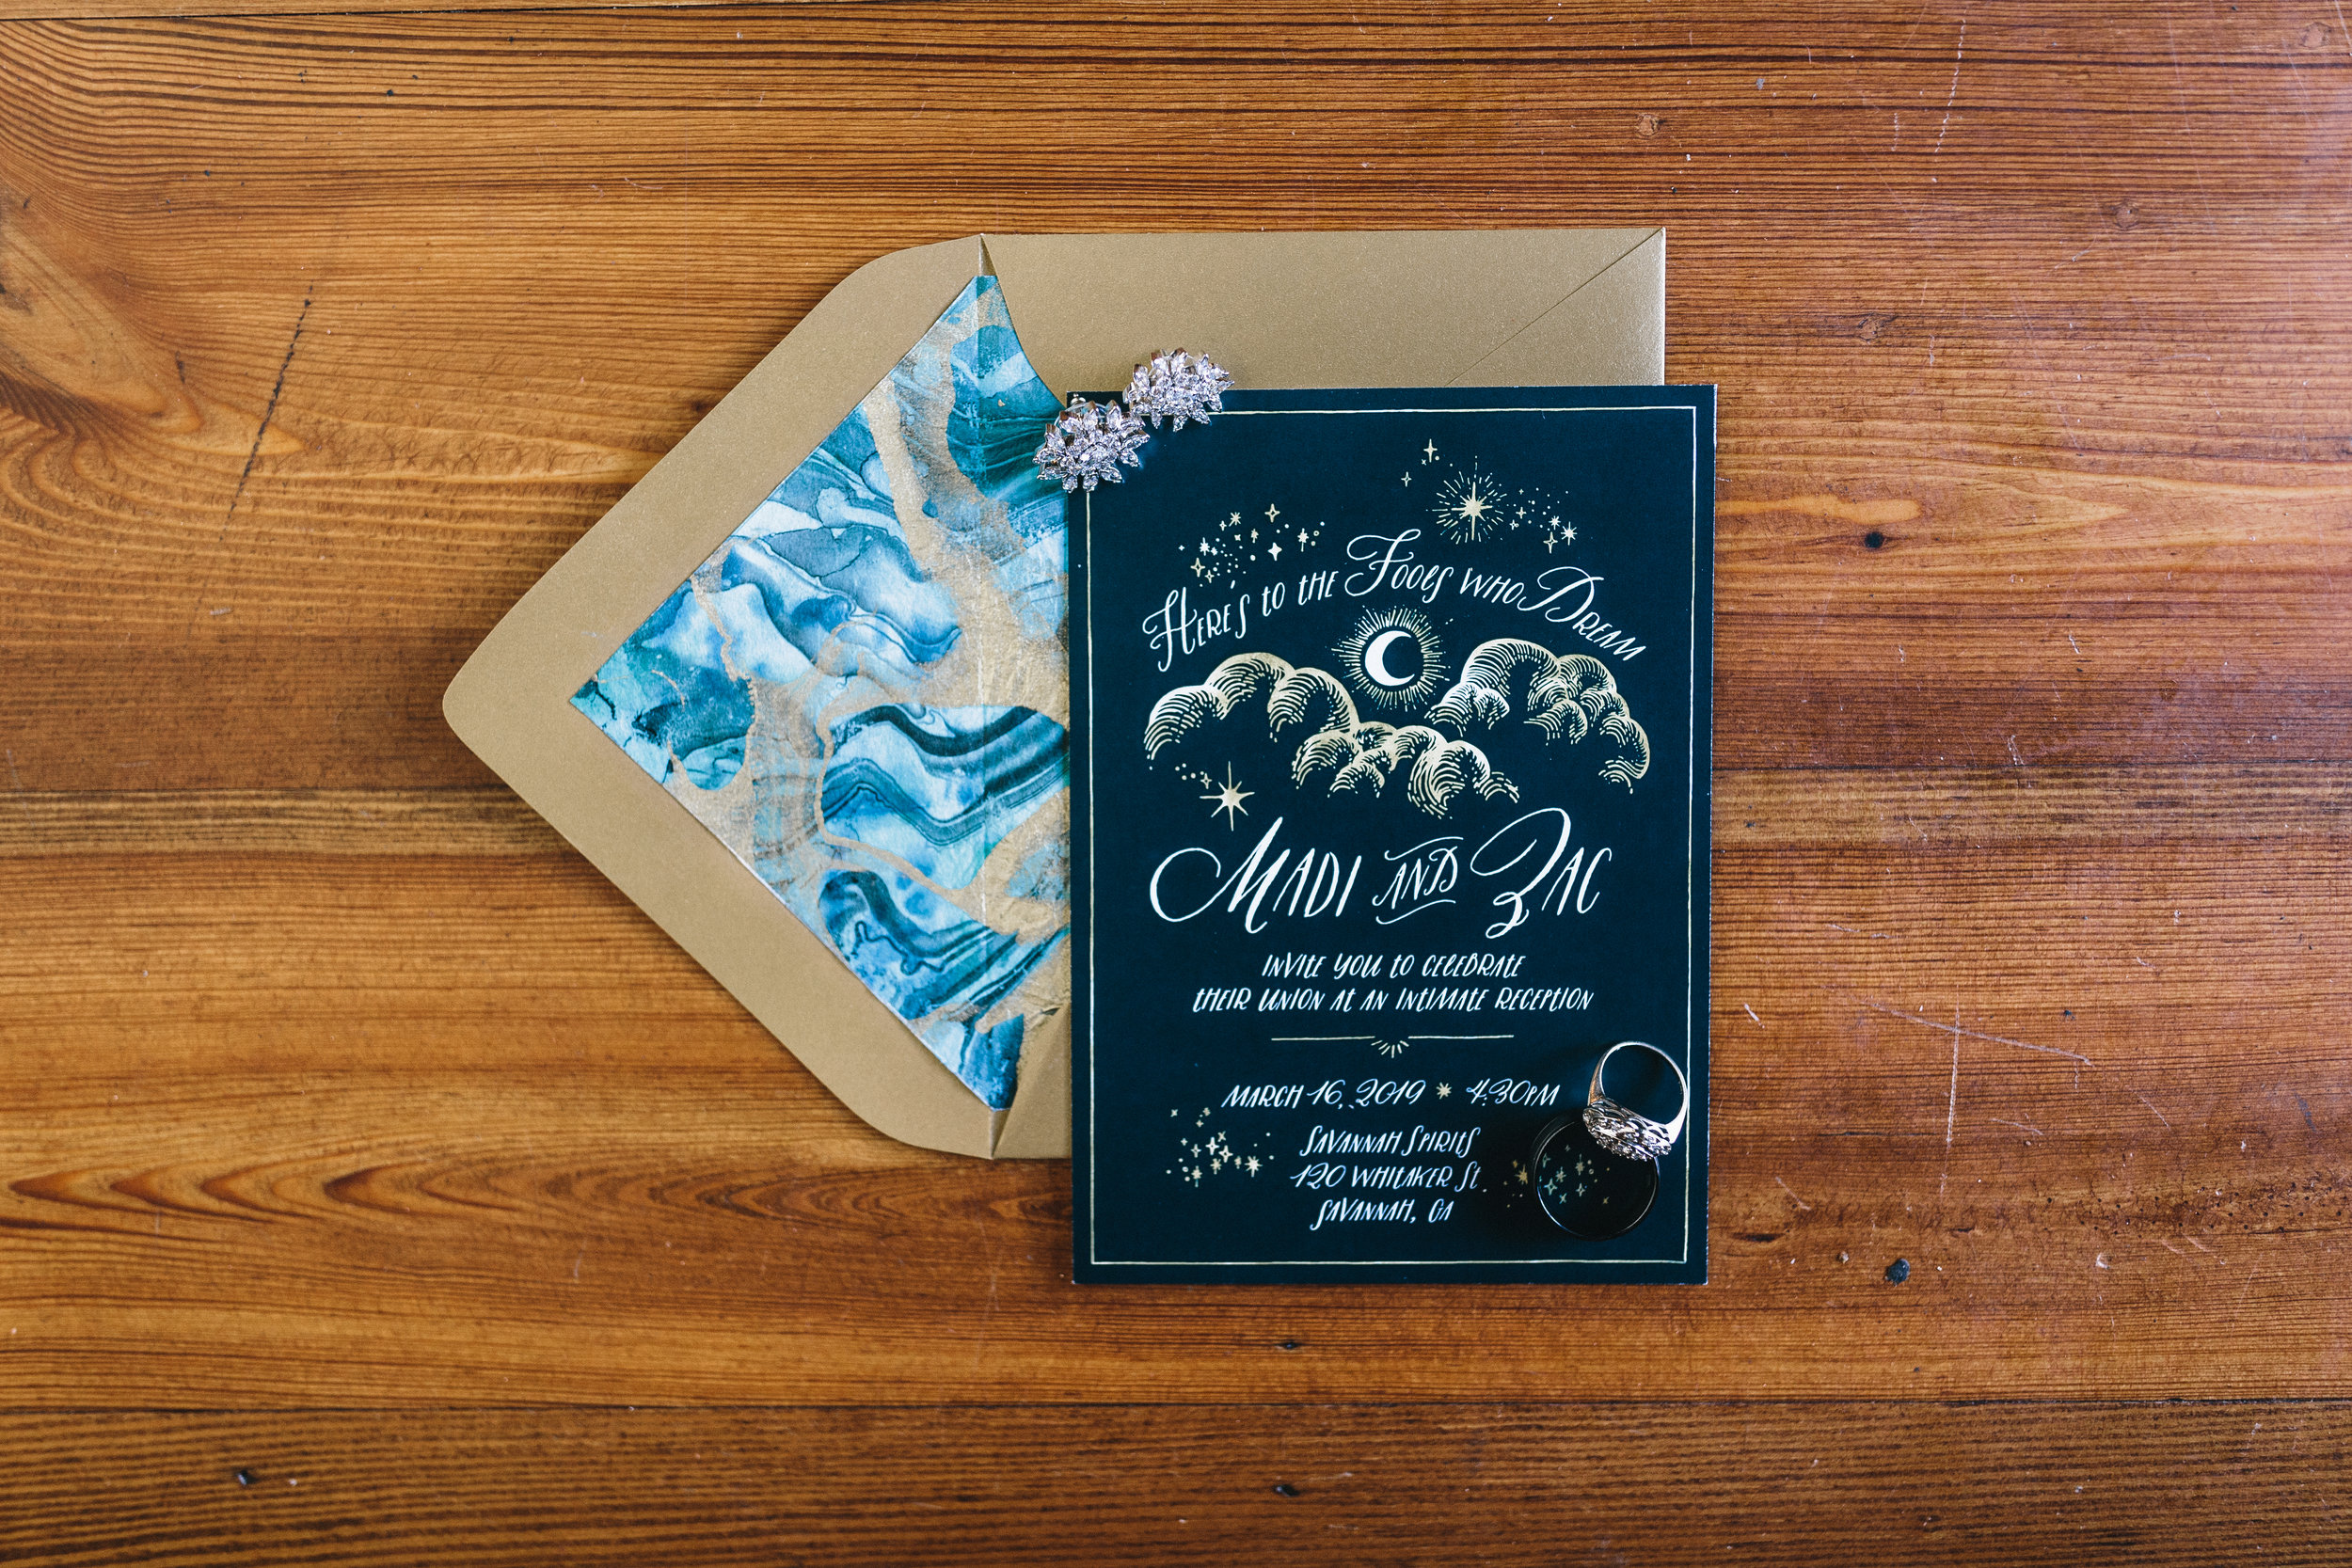 Savannah Wedding Invitations, Planning by Fleeting Elegance